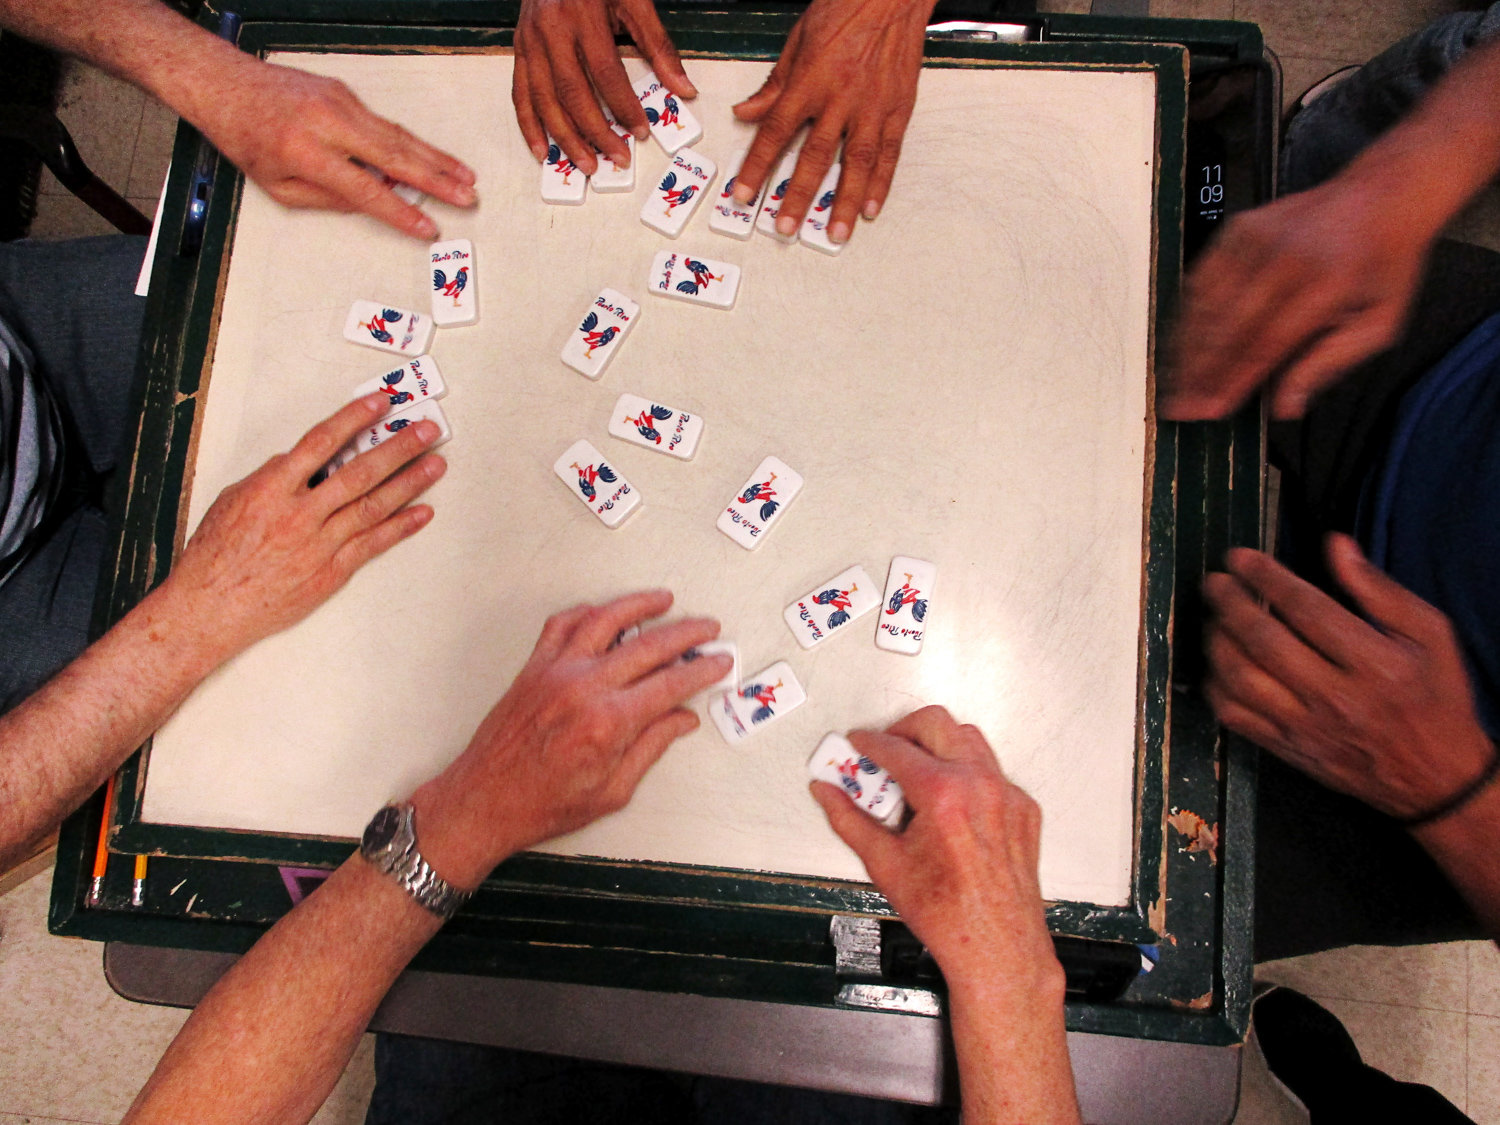 Bronx Senior Photo League member Vivian Hernandez's photograph of a domino game is included in her group's exhibition at the Bronx Documentary Center, on display through Feb. 2.